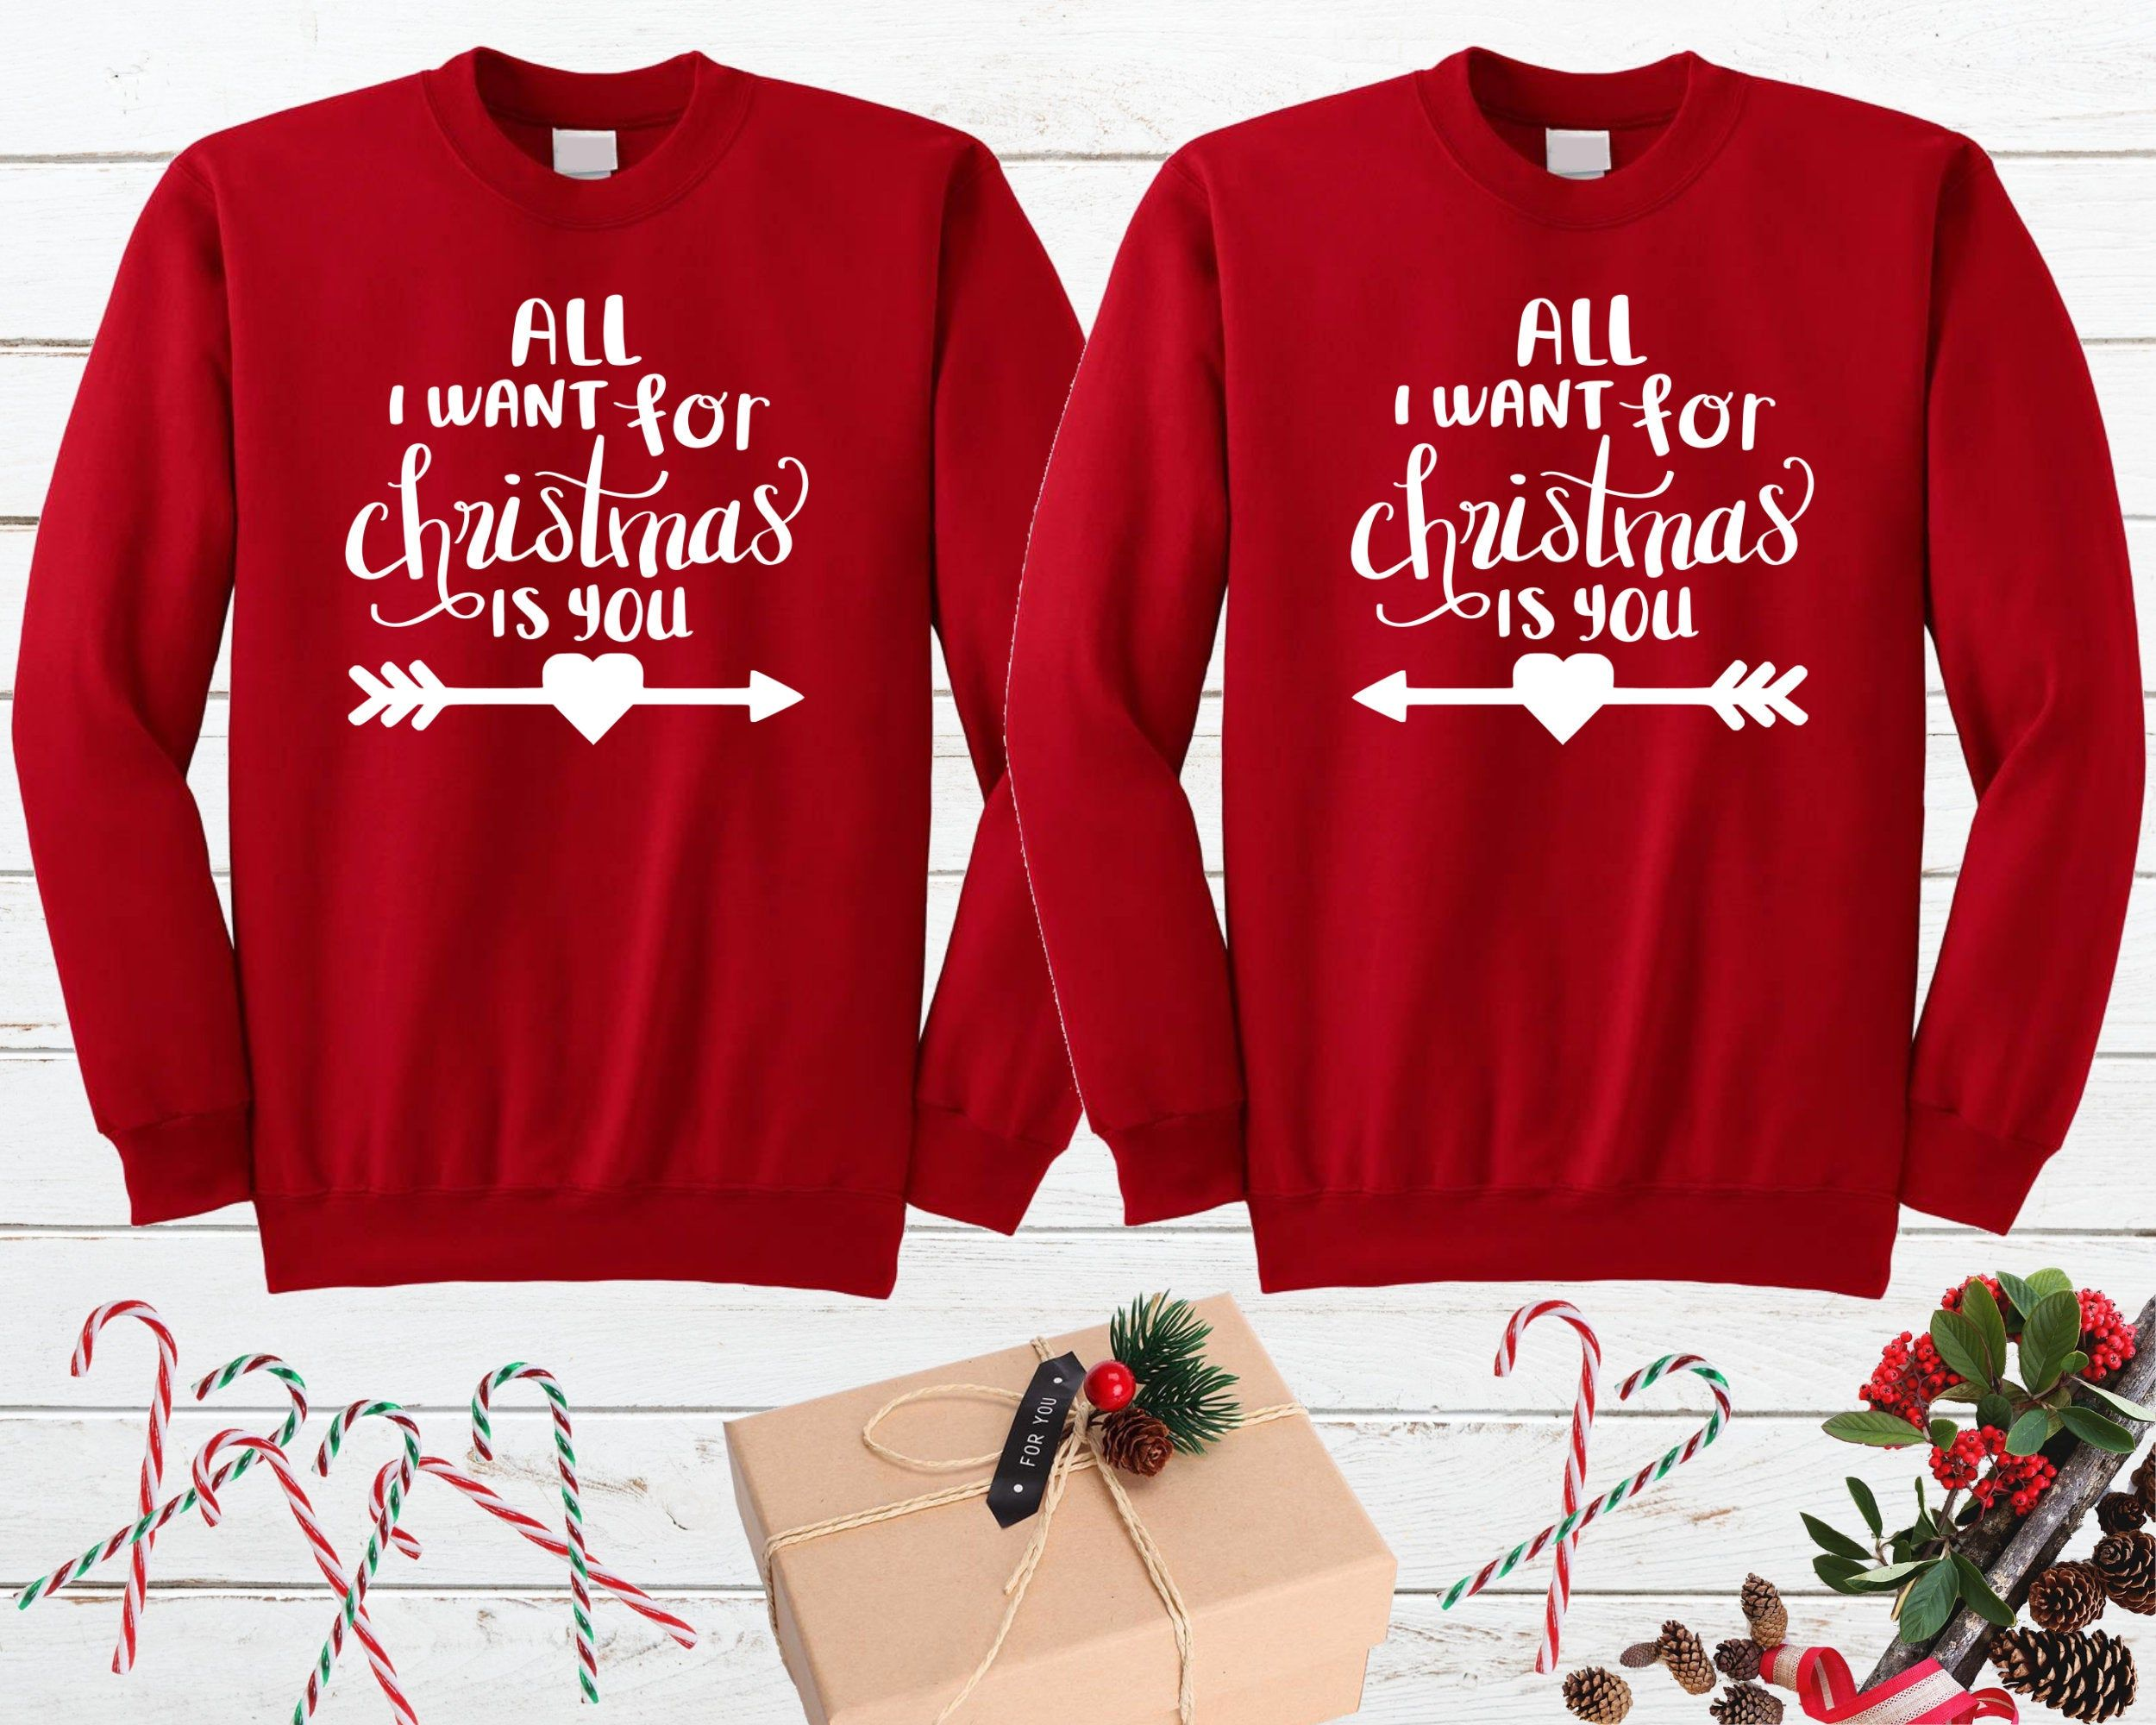 All I Want For Christmas Is You Couple Christmas Sweater Matching Couple Christmas Sweater Couple Holiday Sweater Newlywed Christmas Gift In 2020 Couples Christmas Sweaters Matching Family Christmas Pajamas Christmas Sweaters